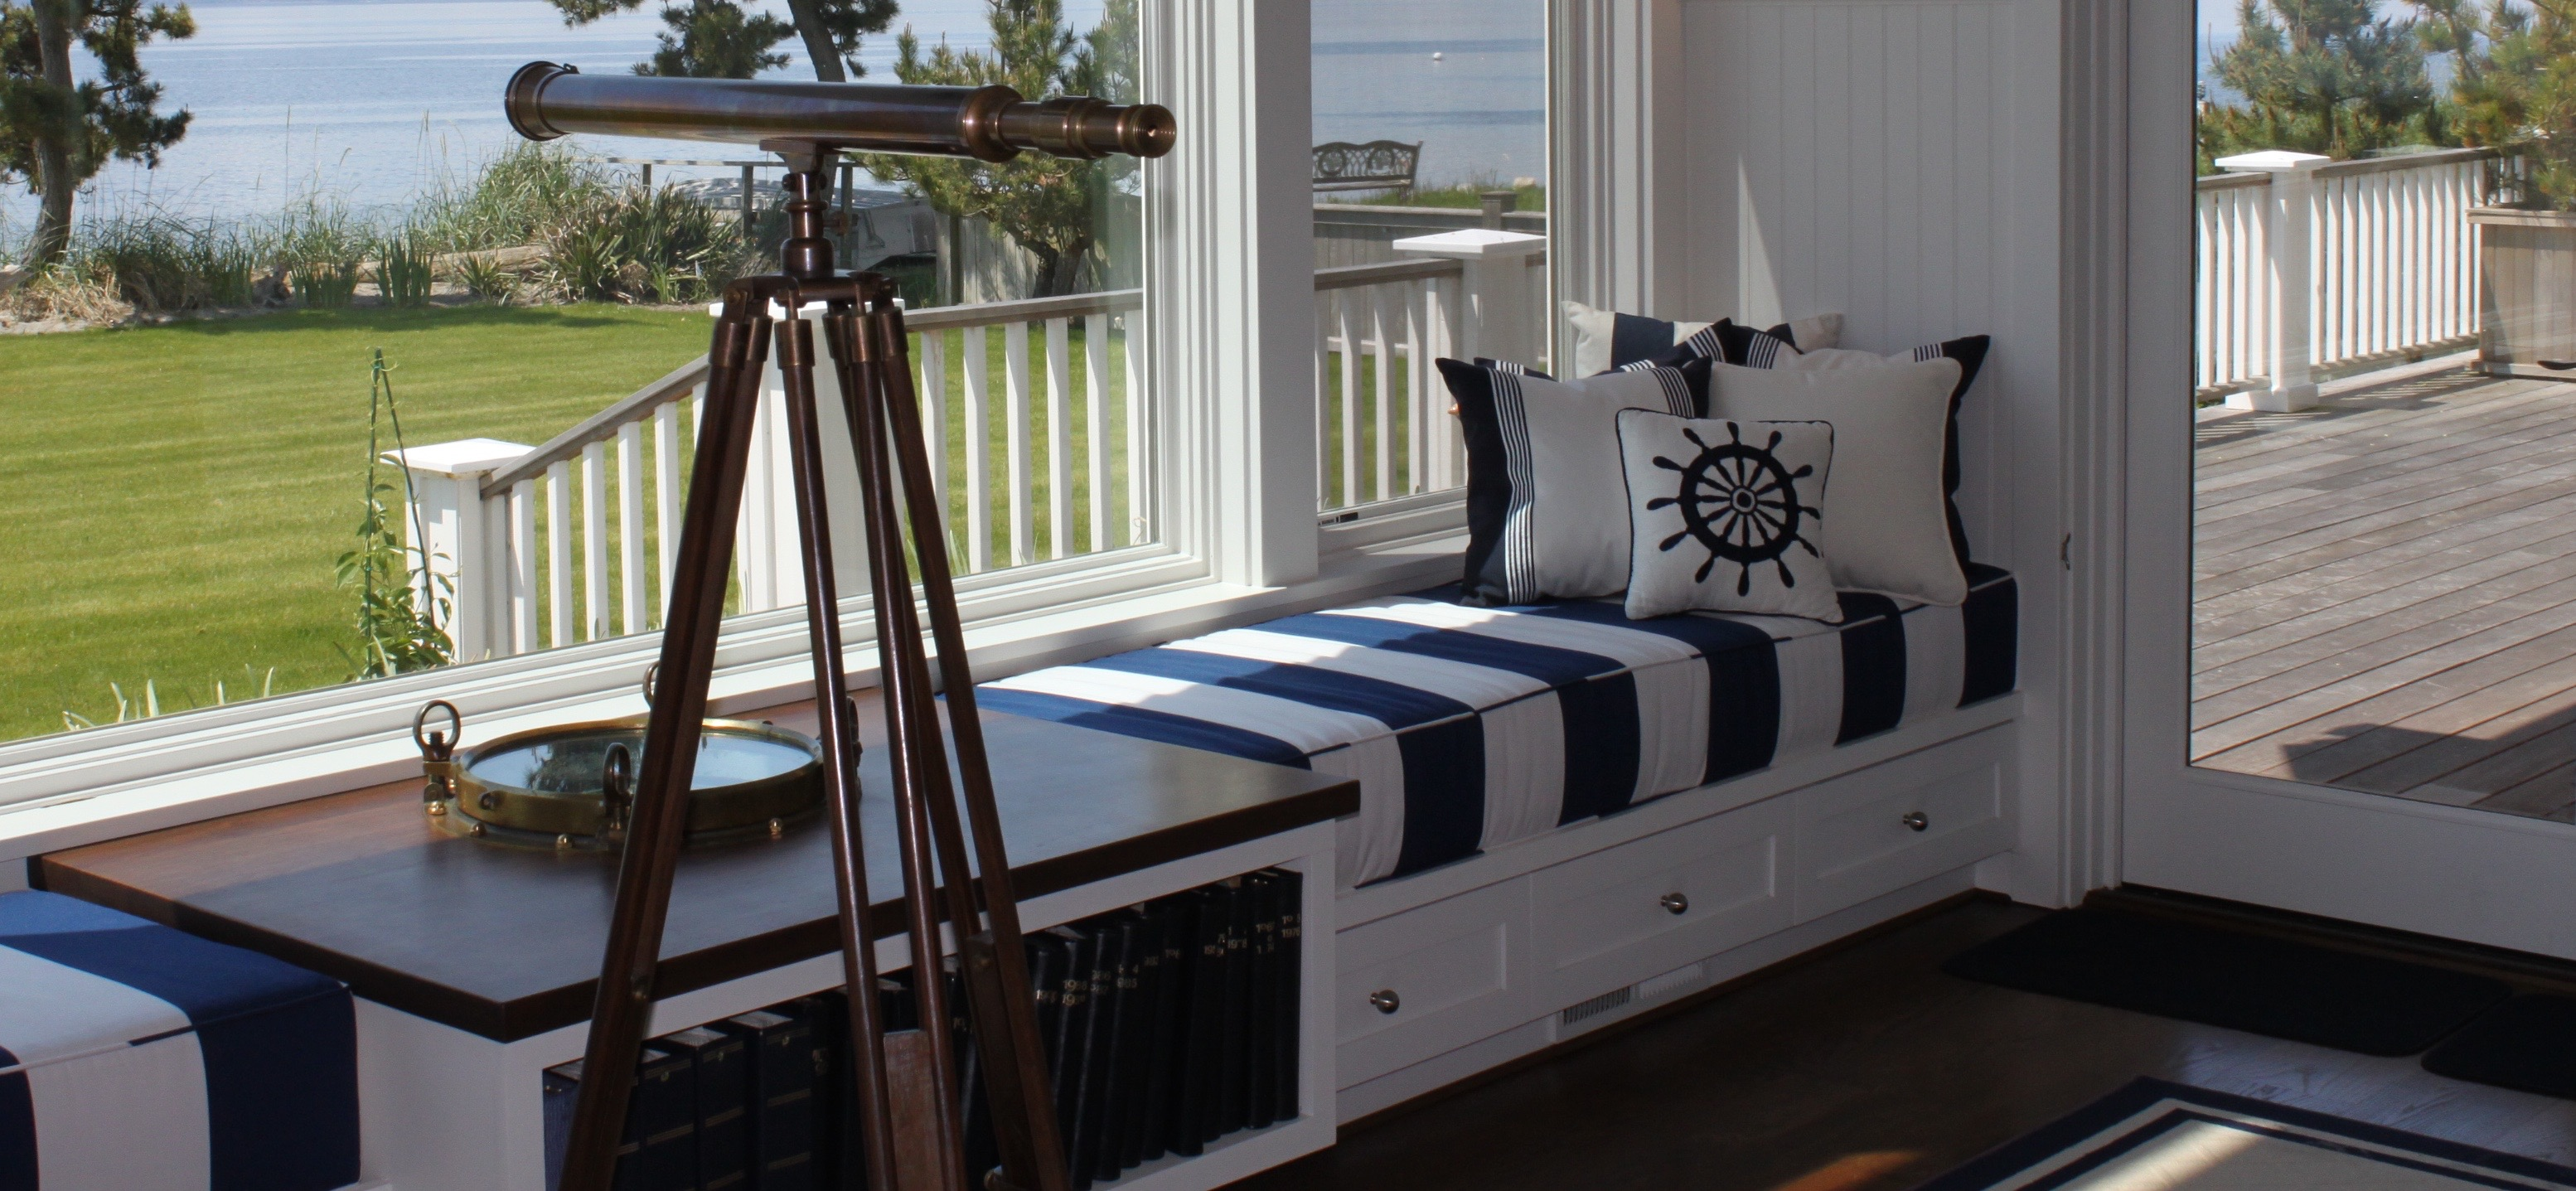 5 Interior Design & Decorating Tips for a Nautical Theme